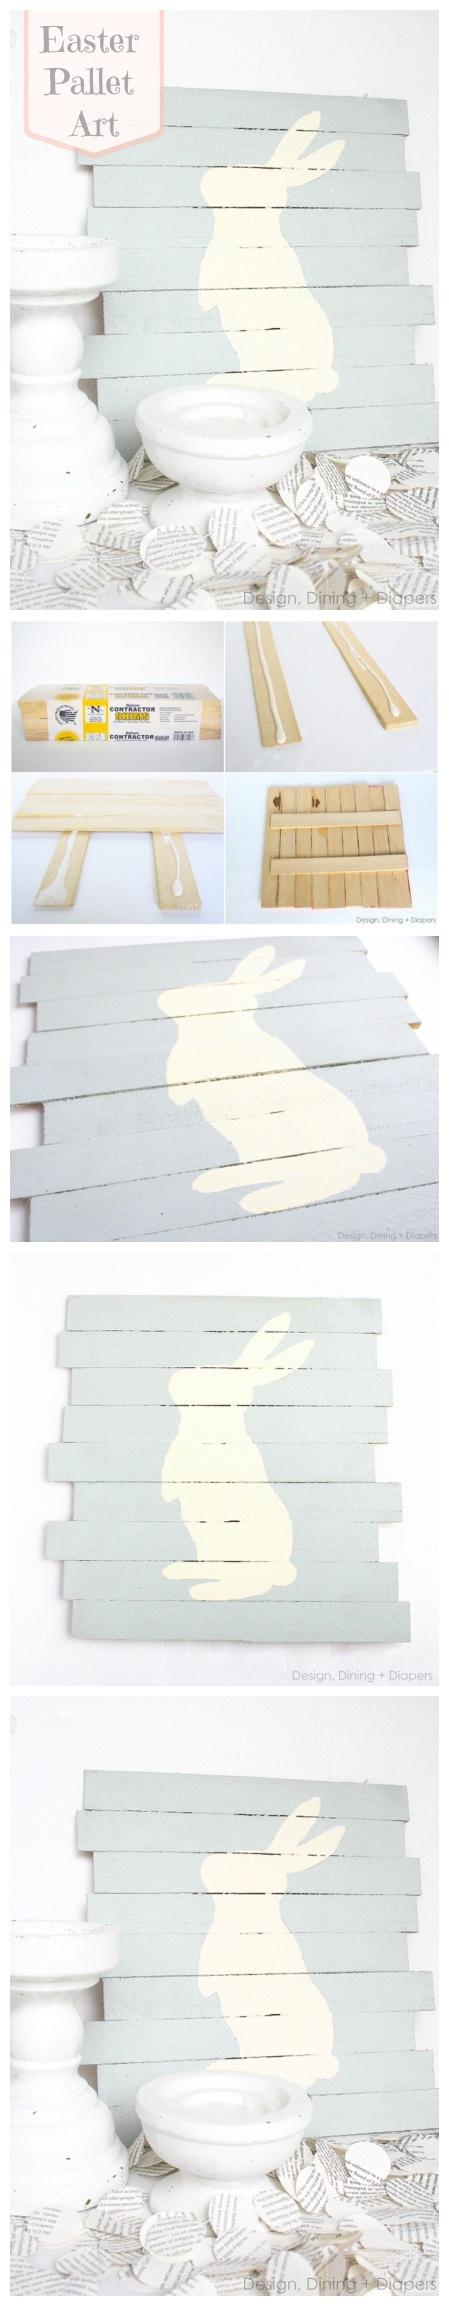 DIY Easter Pallet Art Tutorials